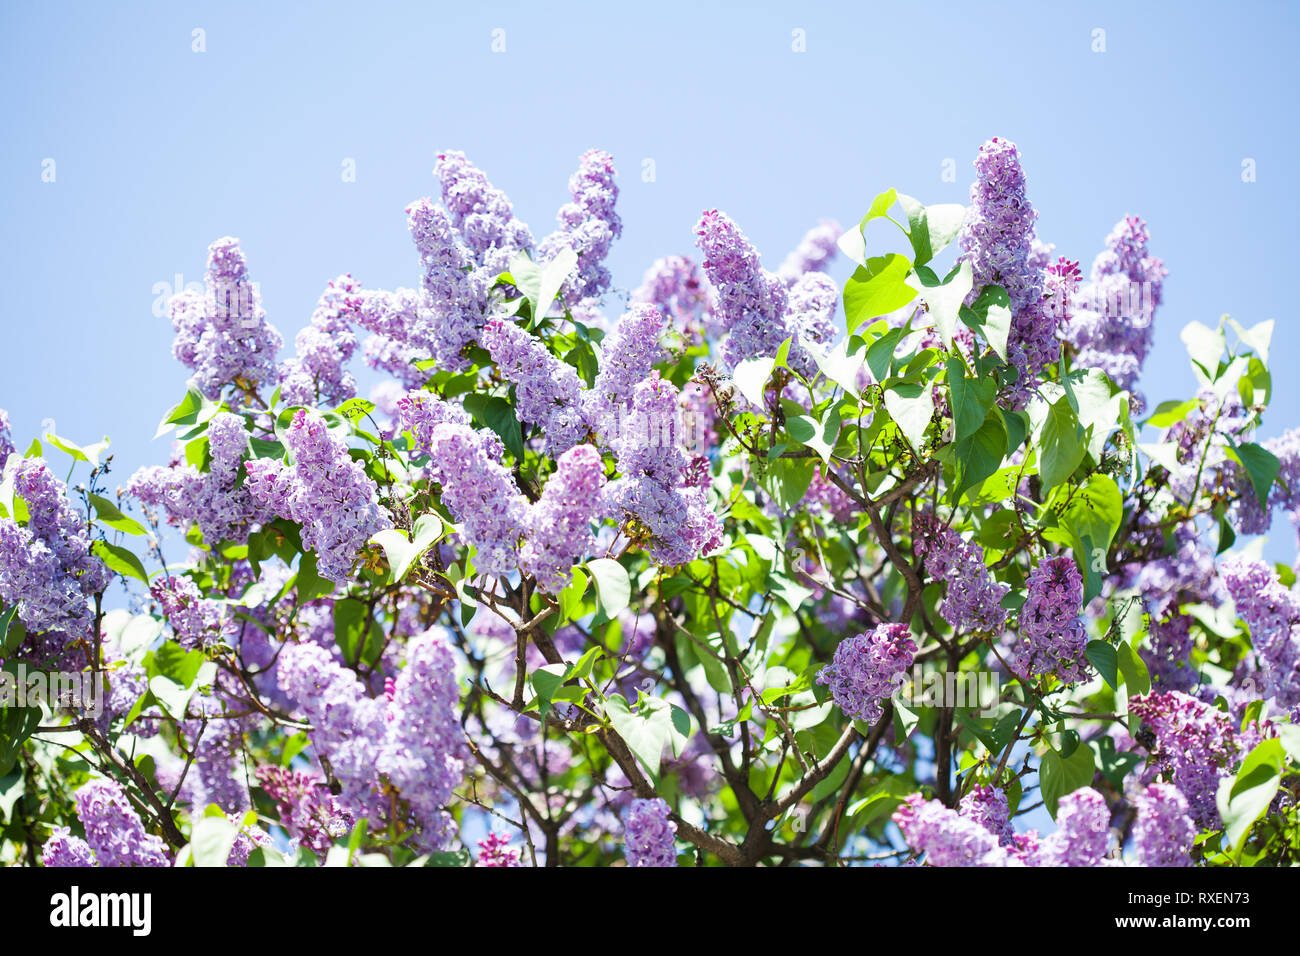 Pianta Fiori Viola A Grappolo.Blossoming Syringa Vulgaris Lilacs Bush Beautiful Springtime